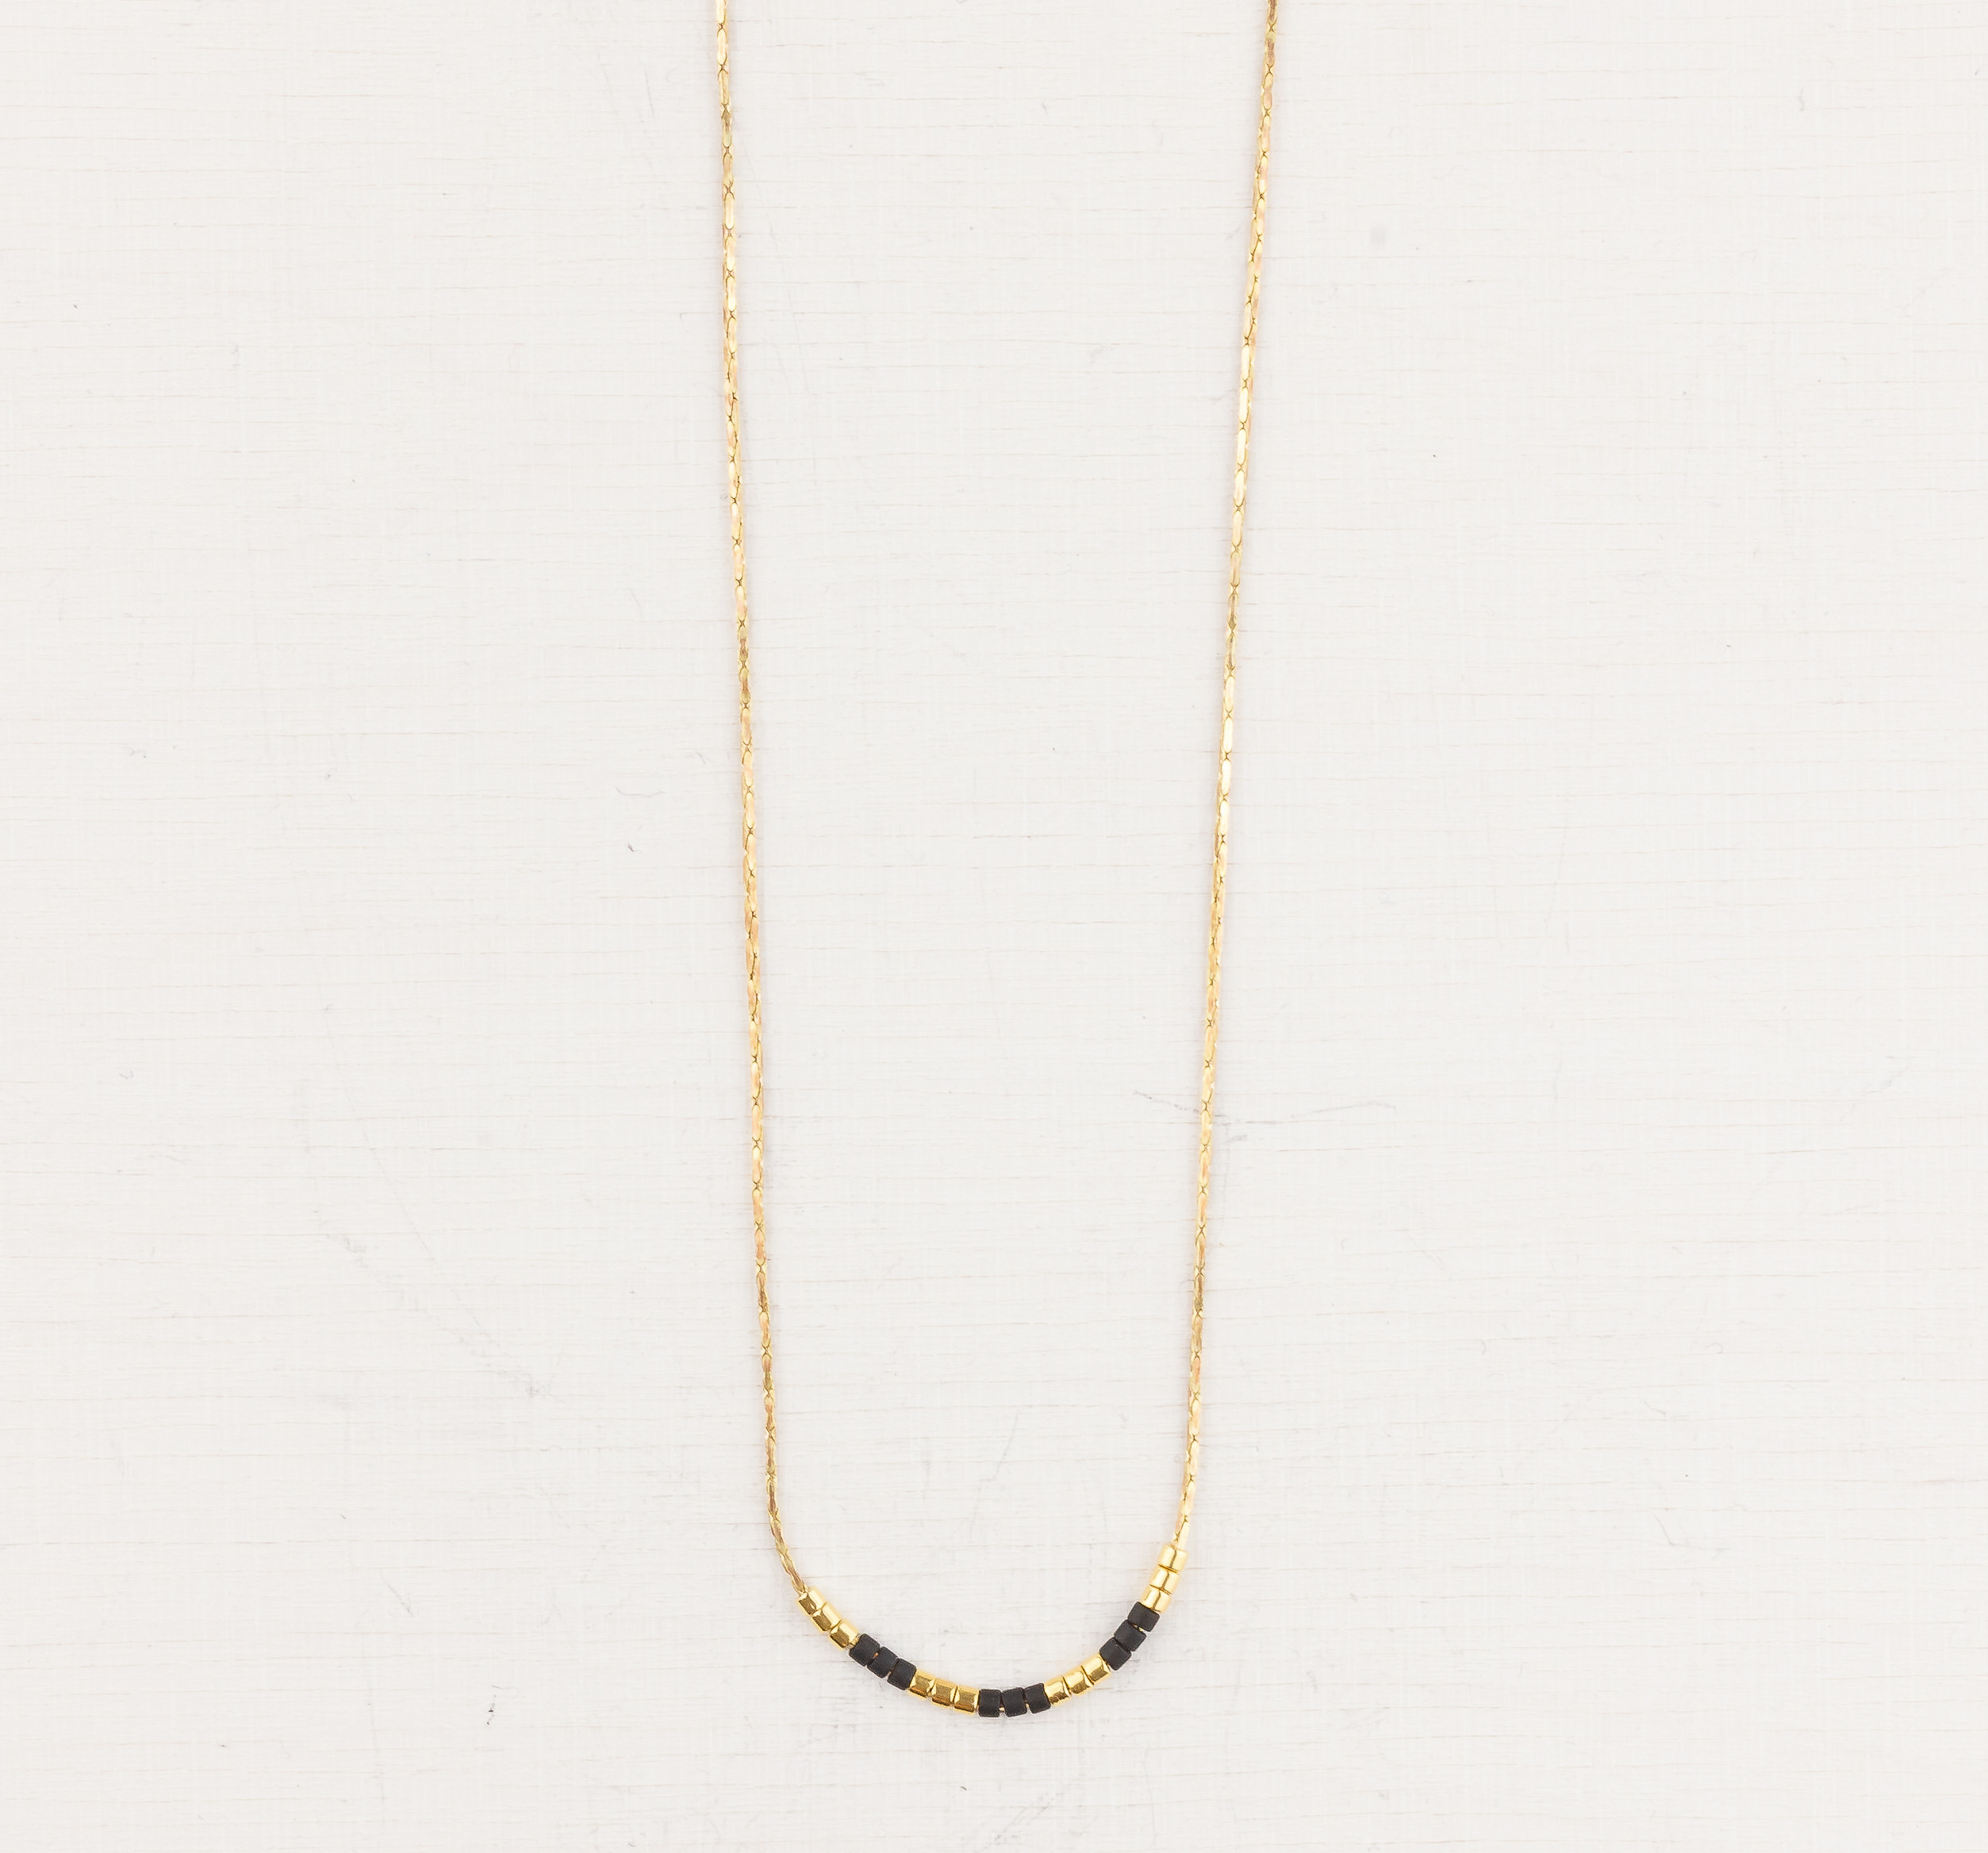 Miyuki Bead 24k Gold-plated Short Necklace by State of A